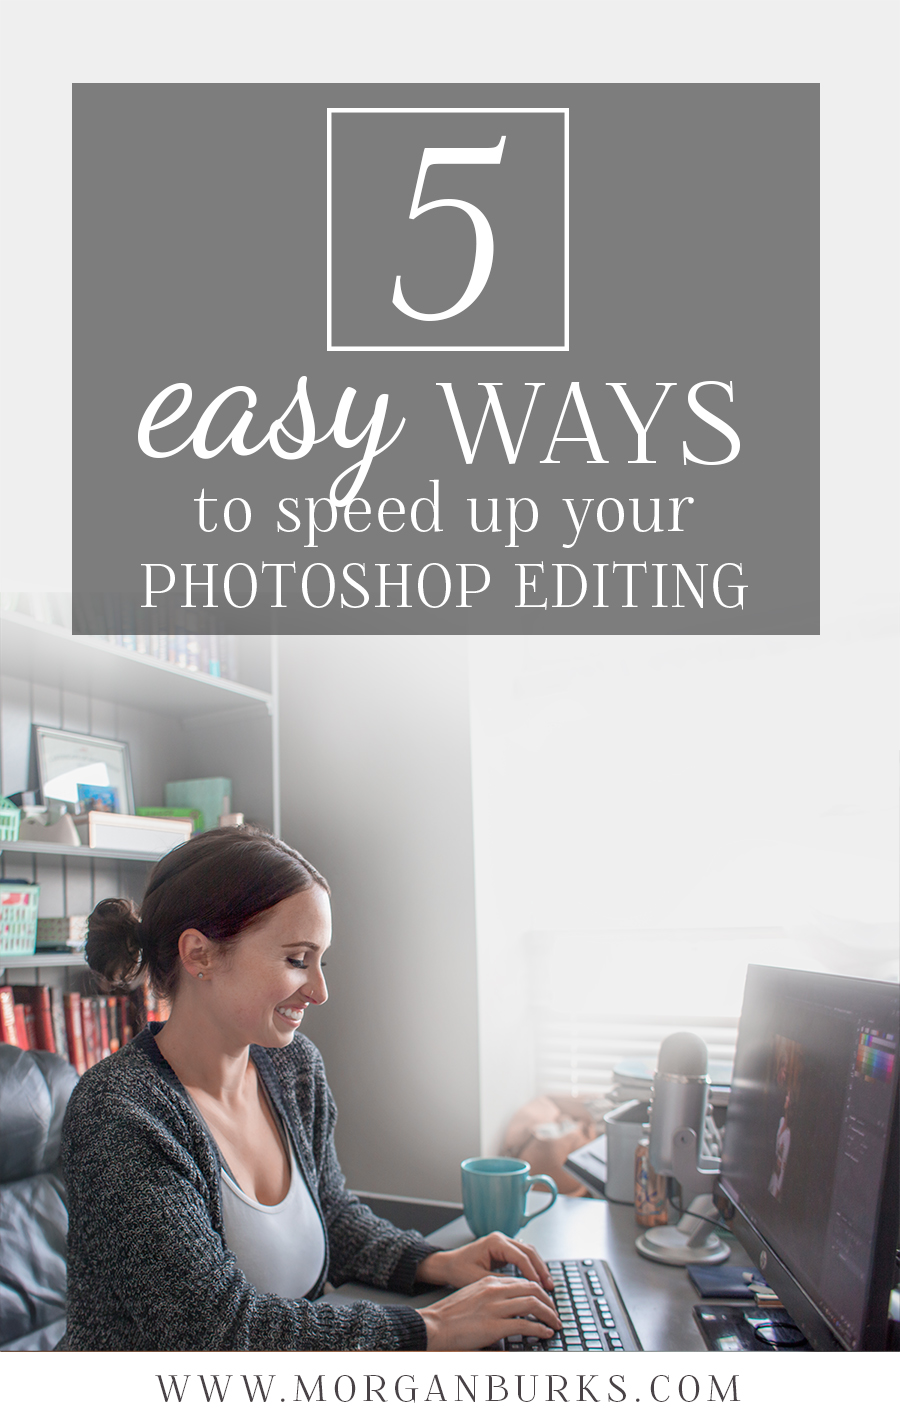 Speed up your editing workflow with these 5 easy tips!